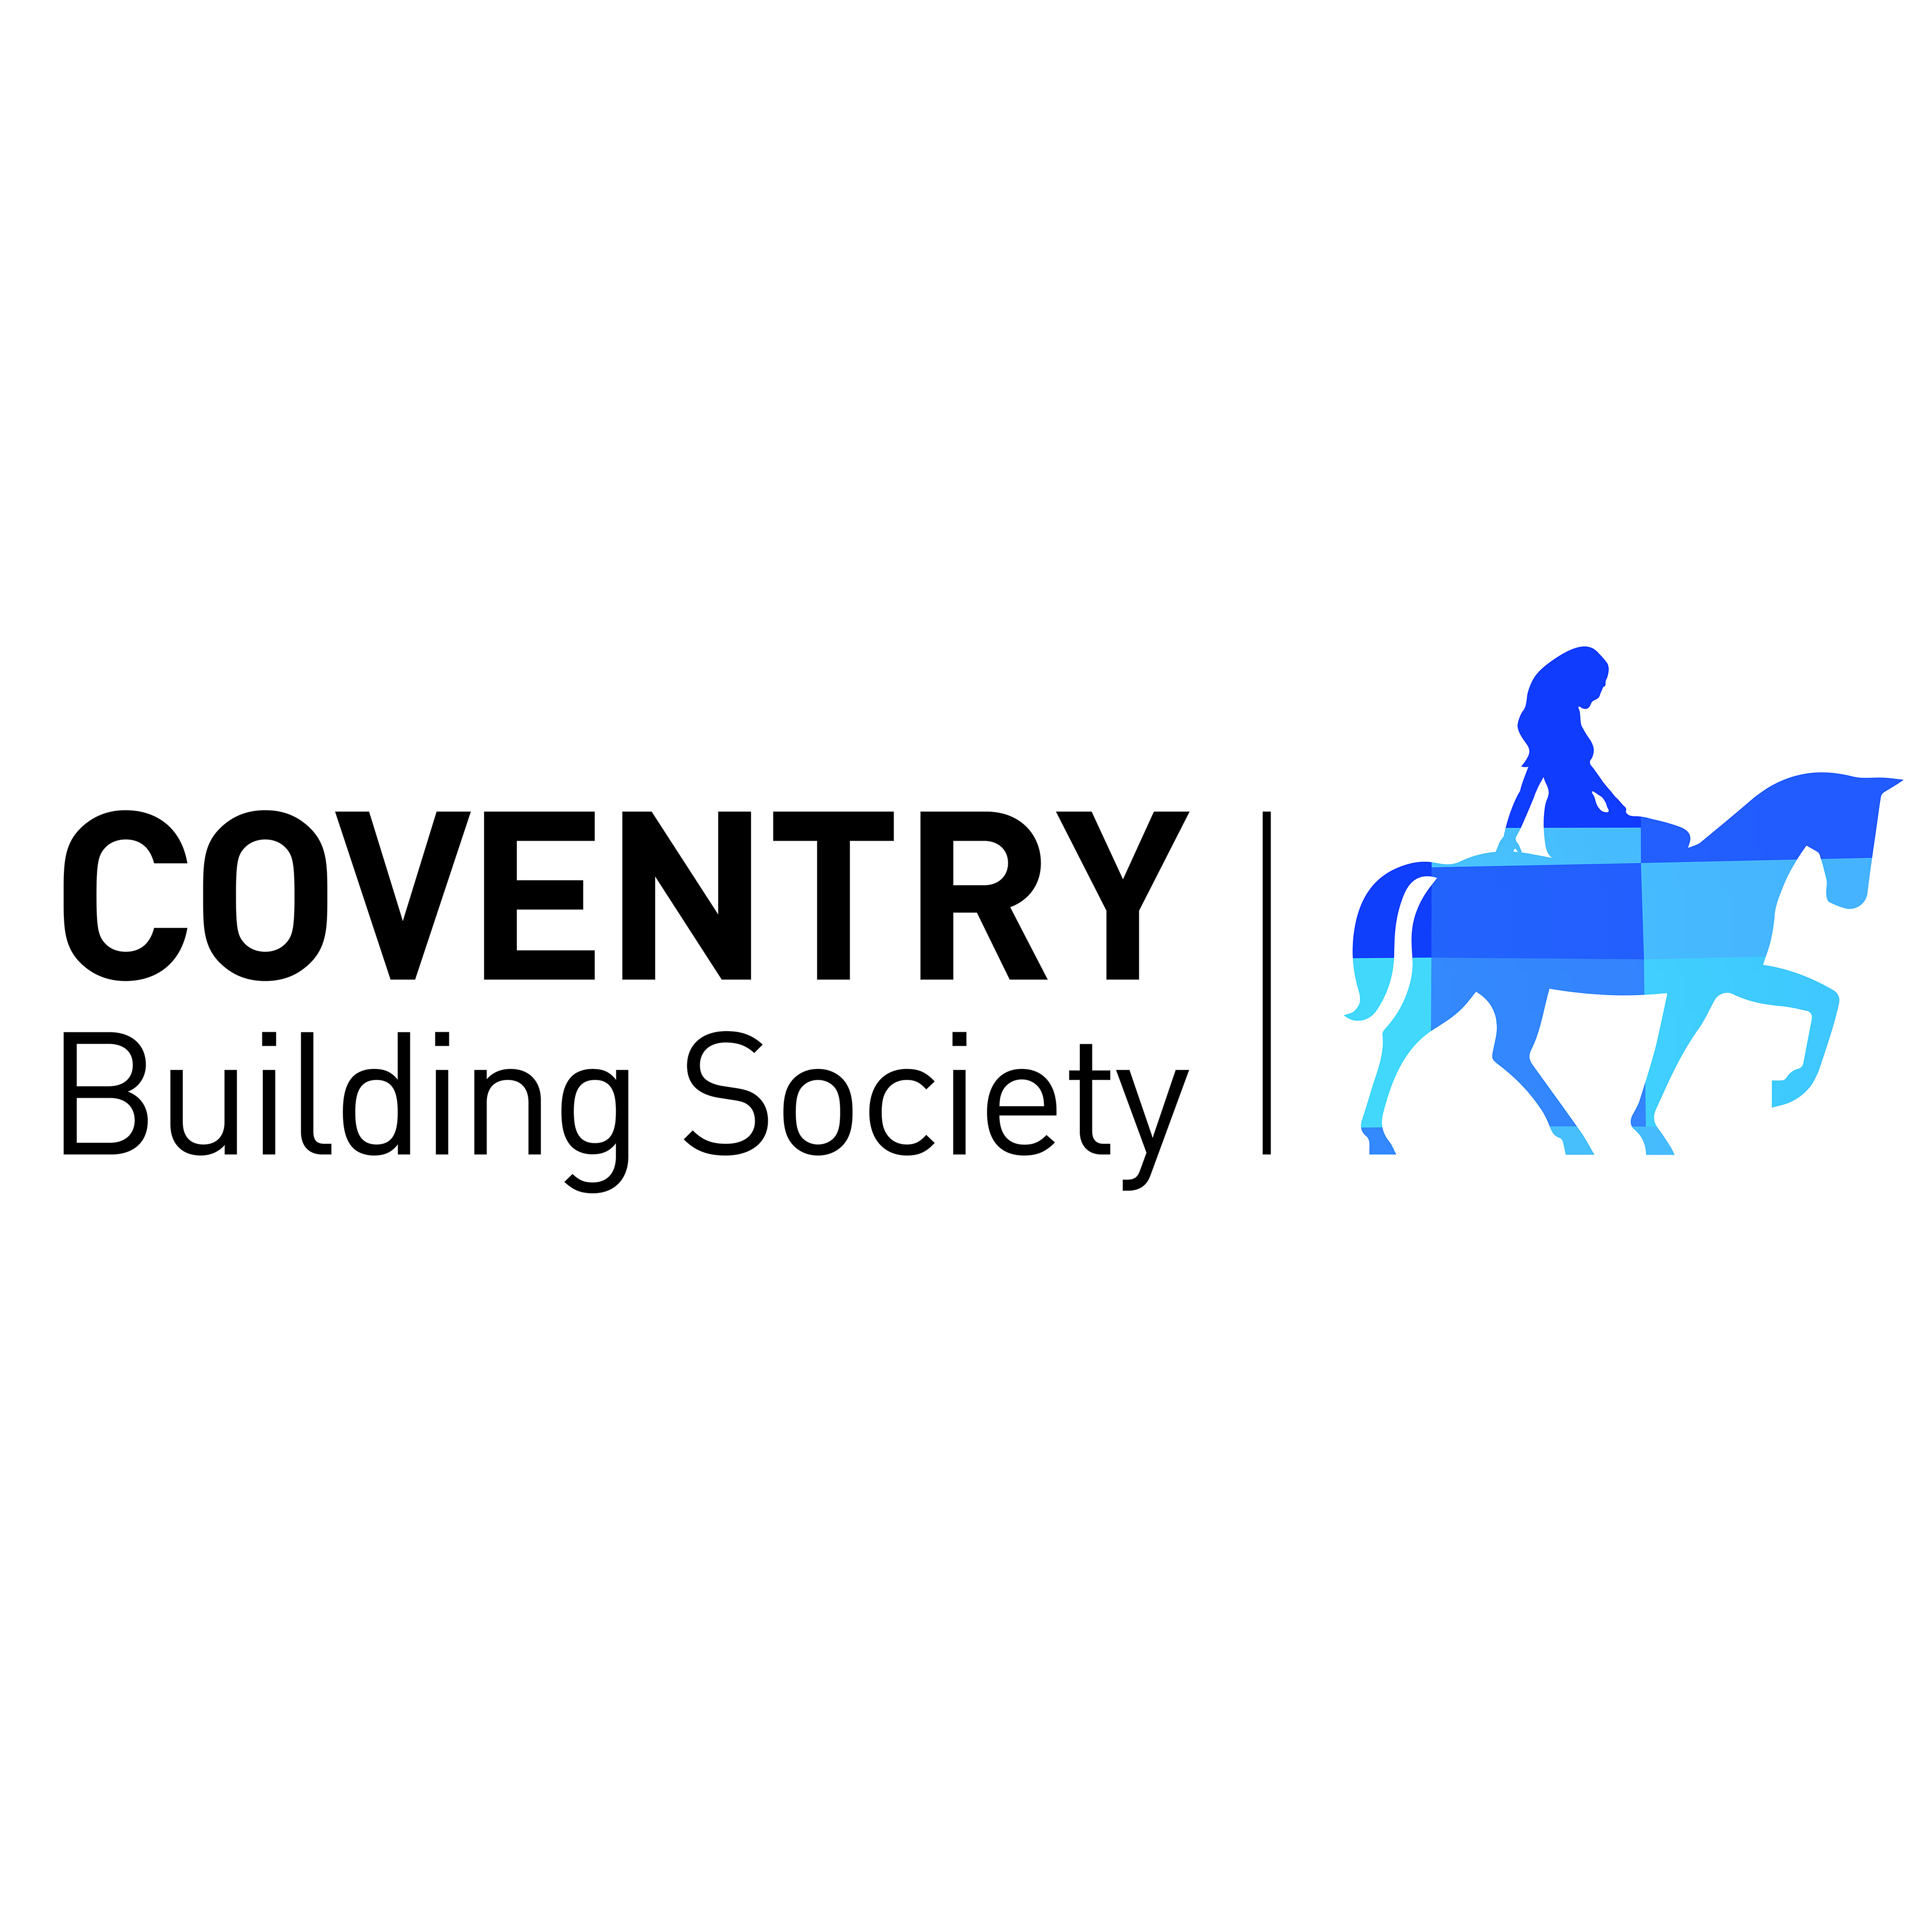 Rachel Haworth, Customer Experience Director at Coventry Building Society